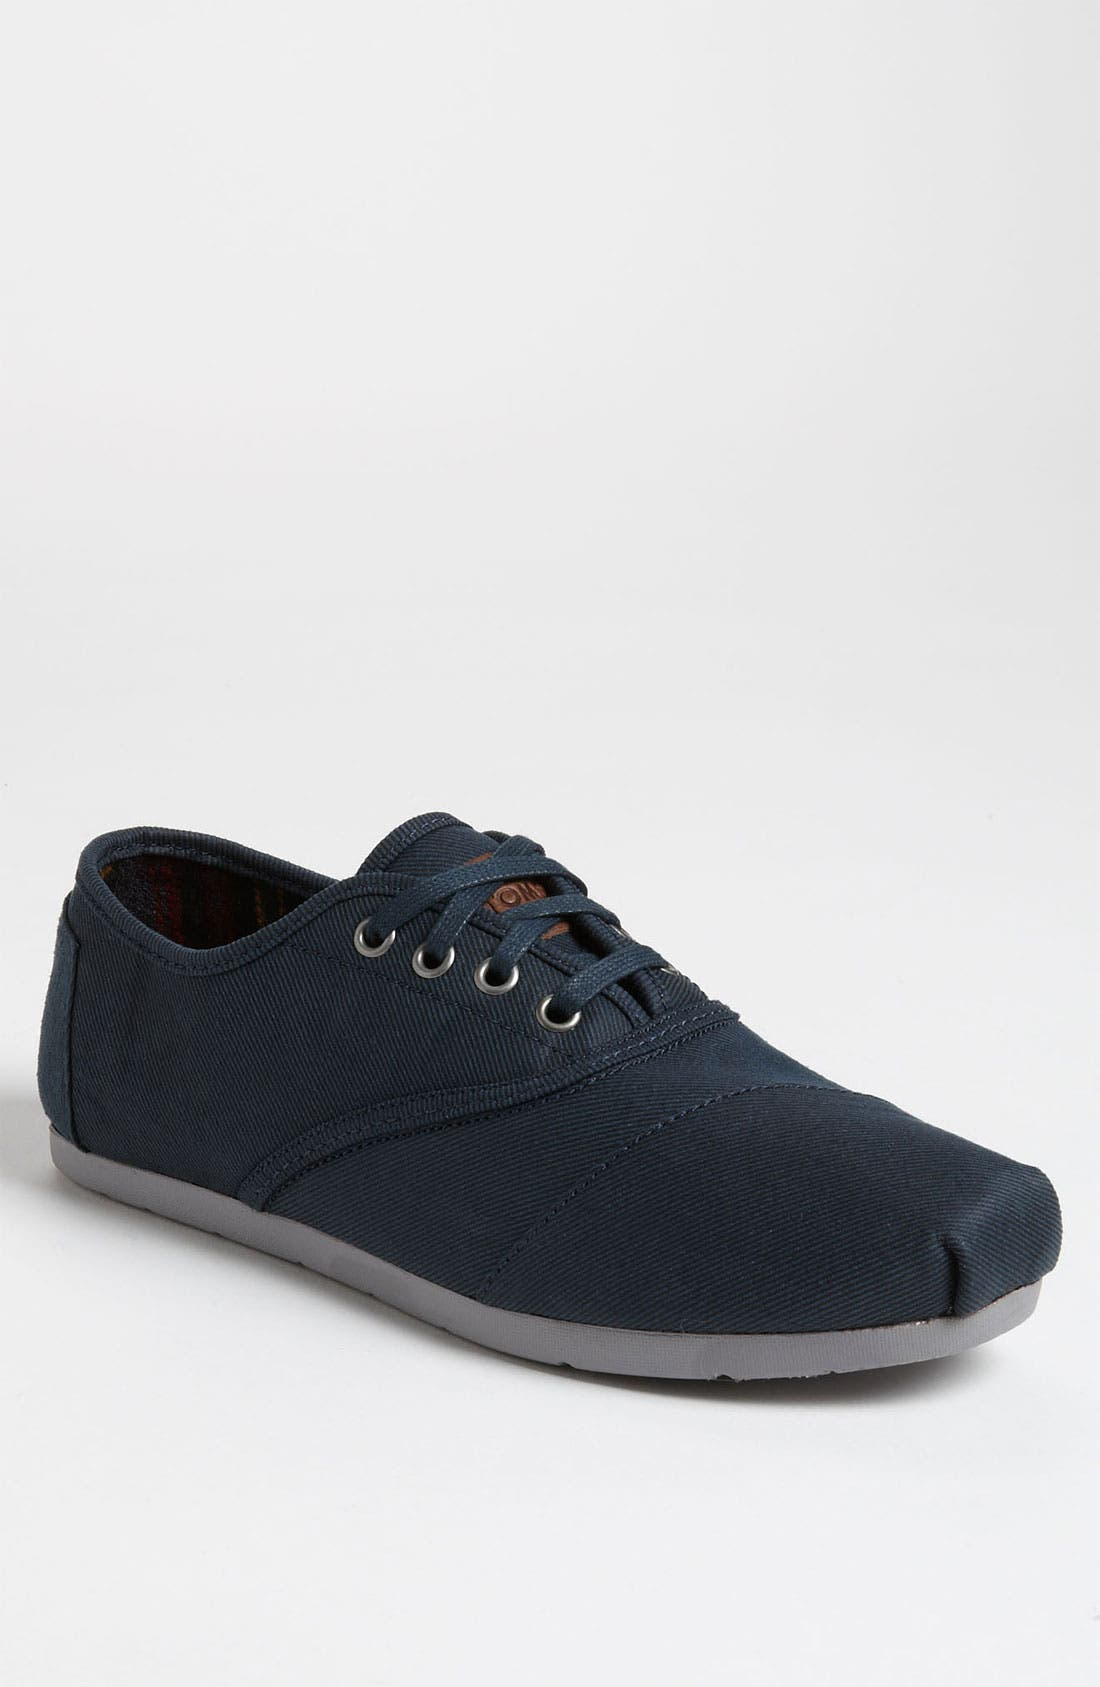 Alternate Image 1 Selected - TOMS 'Cordones' Twill Slip-On (Men)